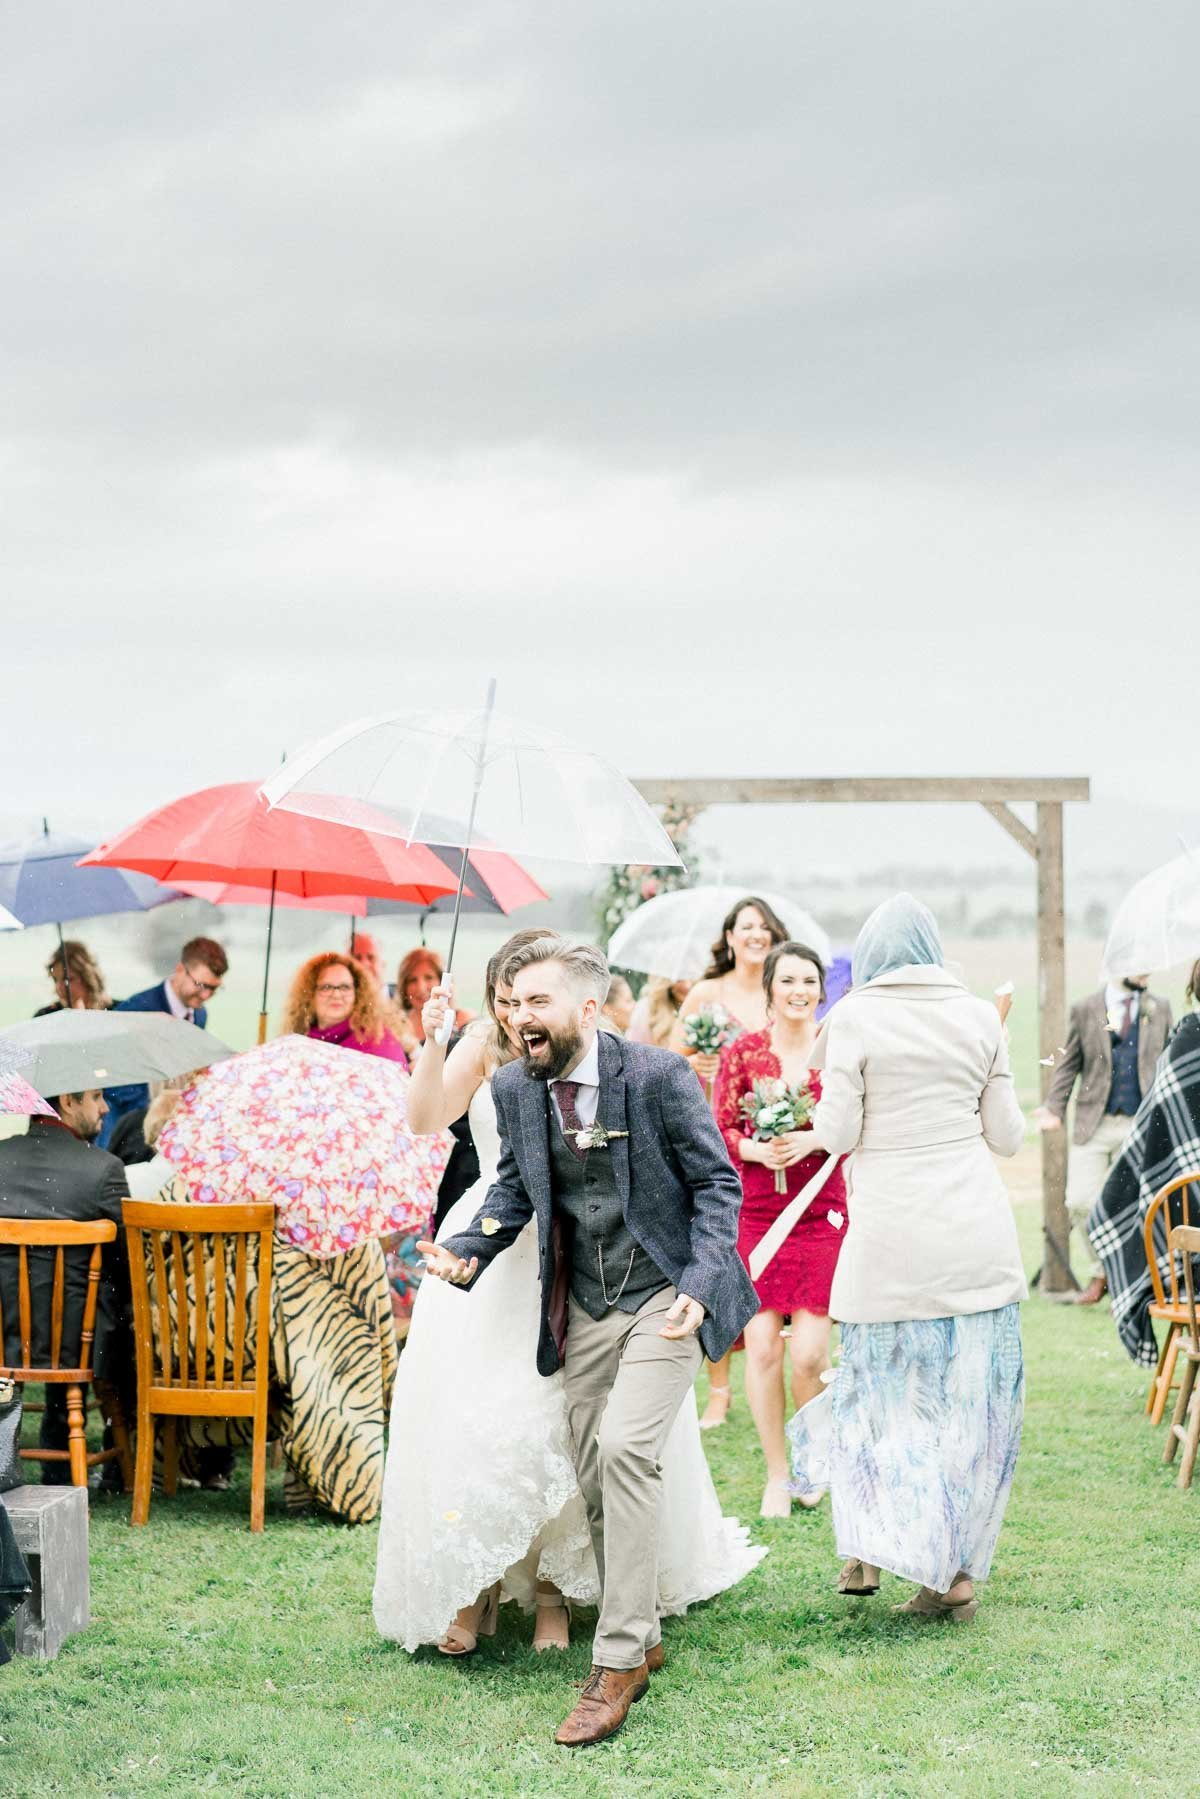 adams-farm-coldstream-yarra-valley-wedding-heart+soul-weddings-kel-jarryd-05144